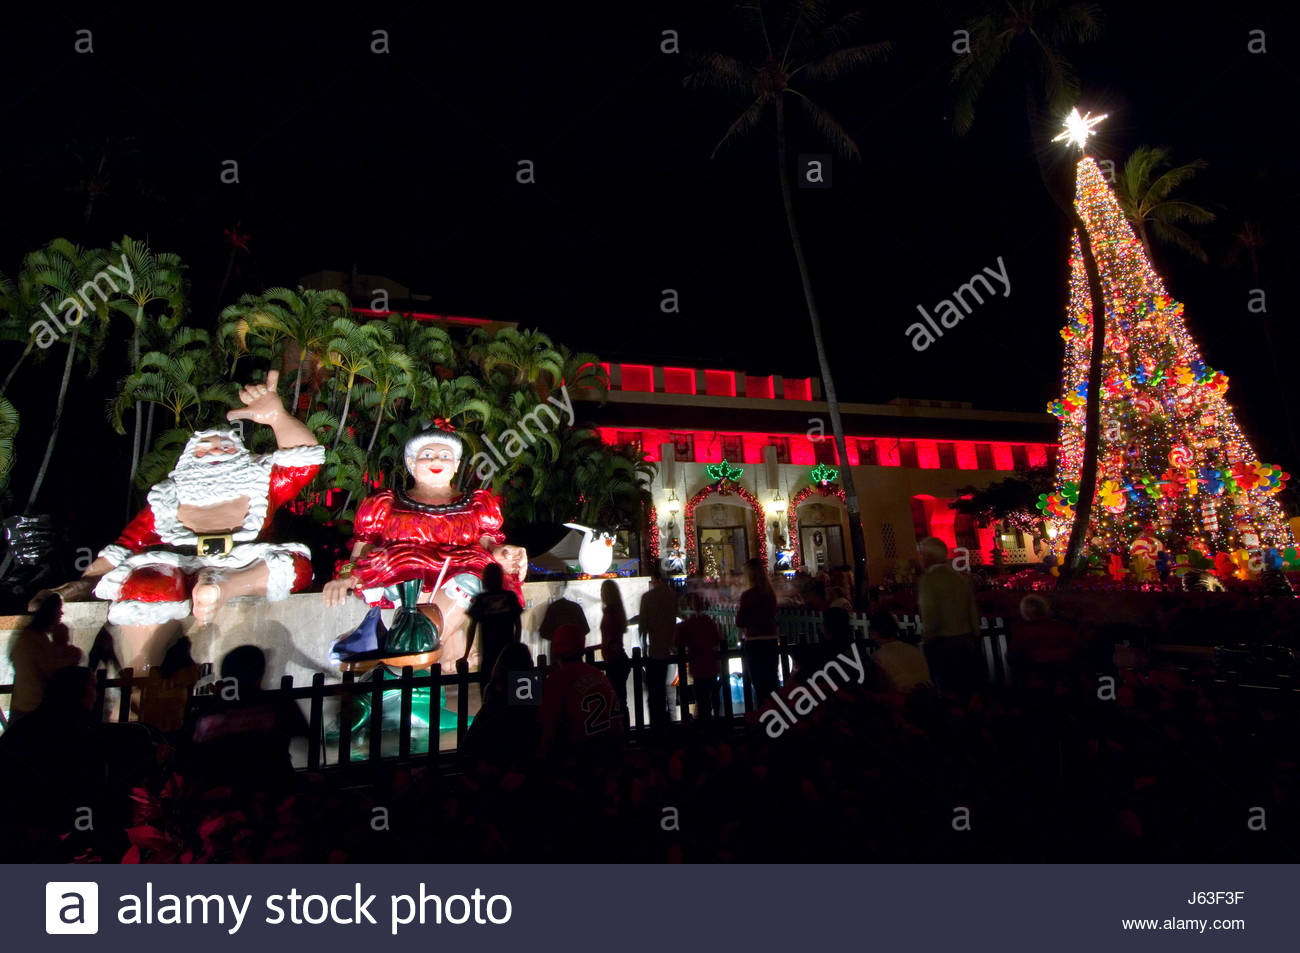 christmas lights and decorations at honolulu hale is a major seasonal attraction put together by the city and county of honolulu oahu hawaii usa 200